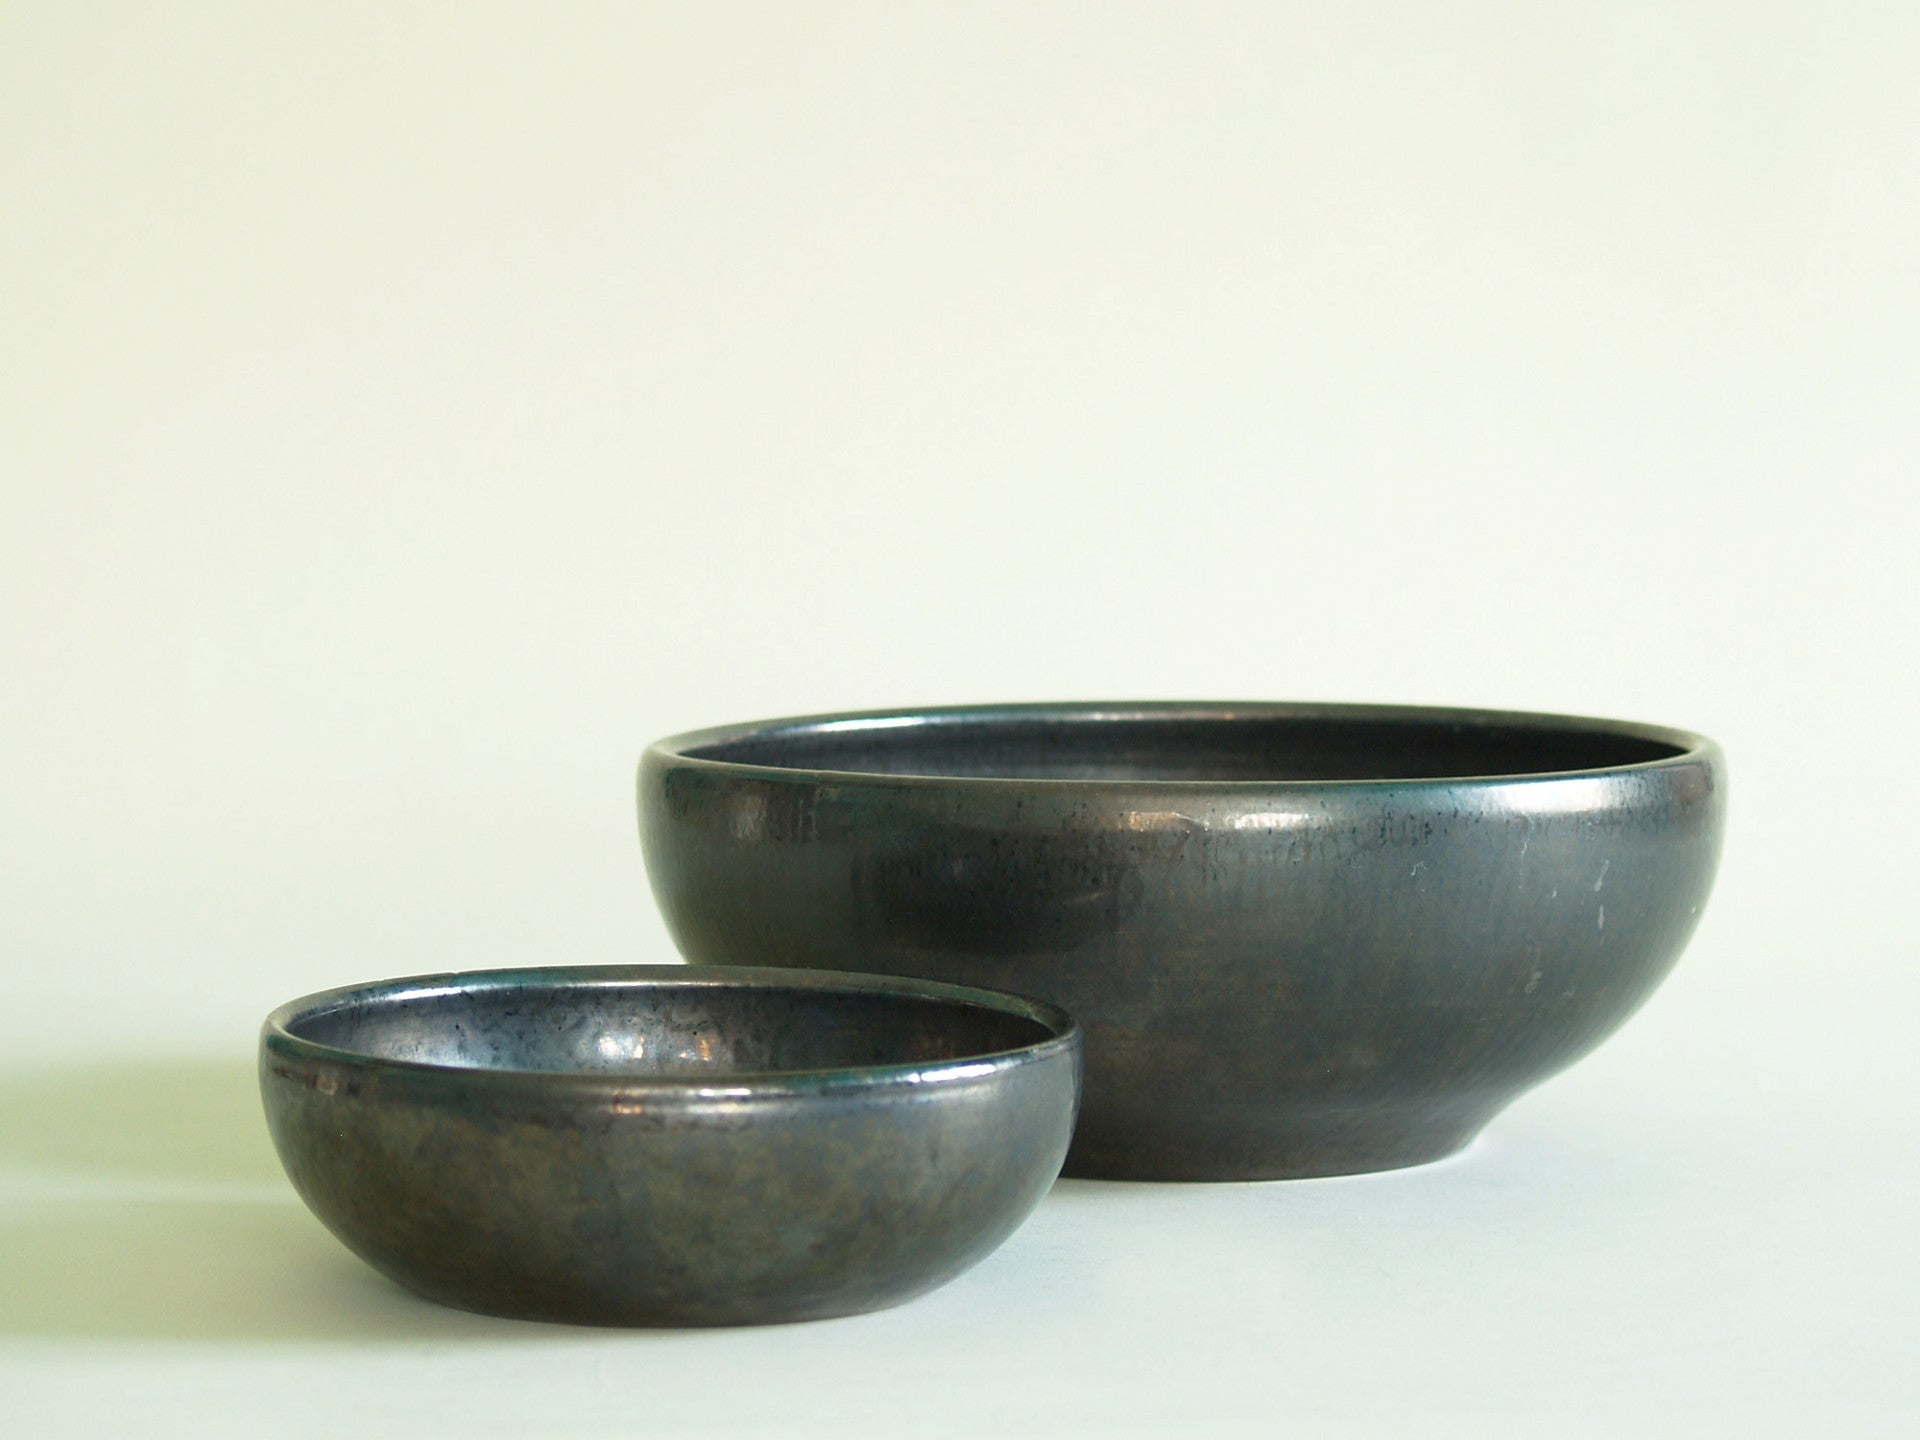 Grande coupe noire de Robert Picault, France (vers 1948)..Large black Bowl by Robert Picault, France (circa 1948)